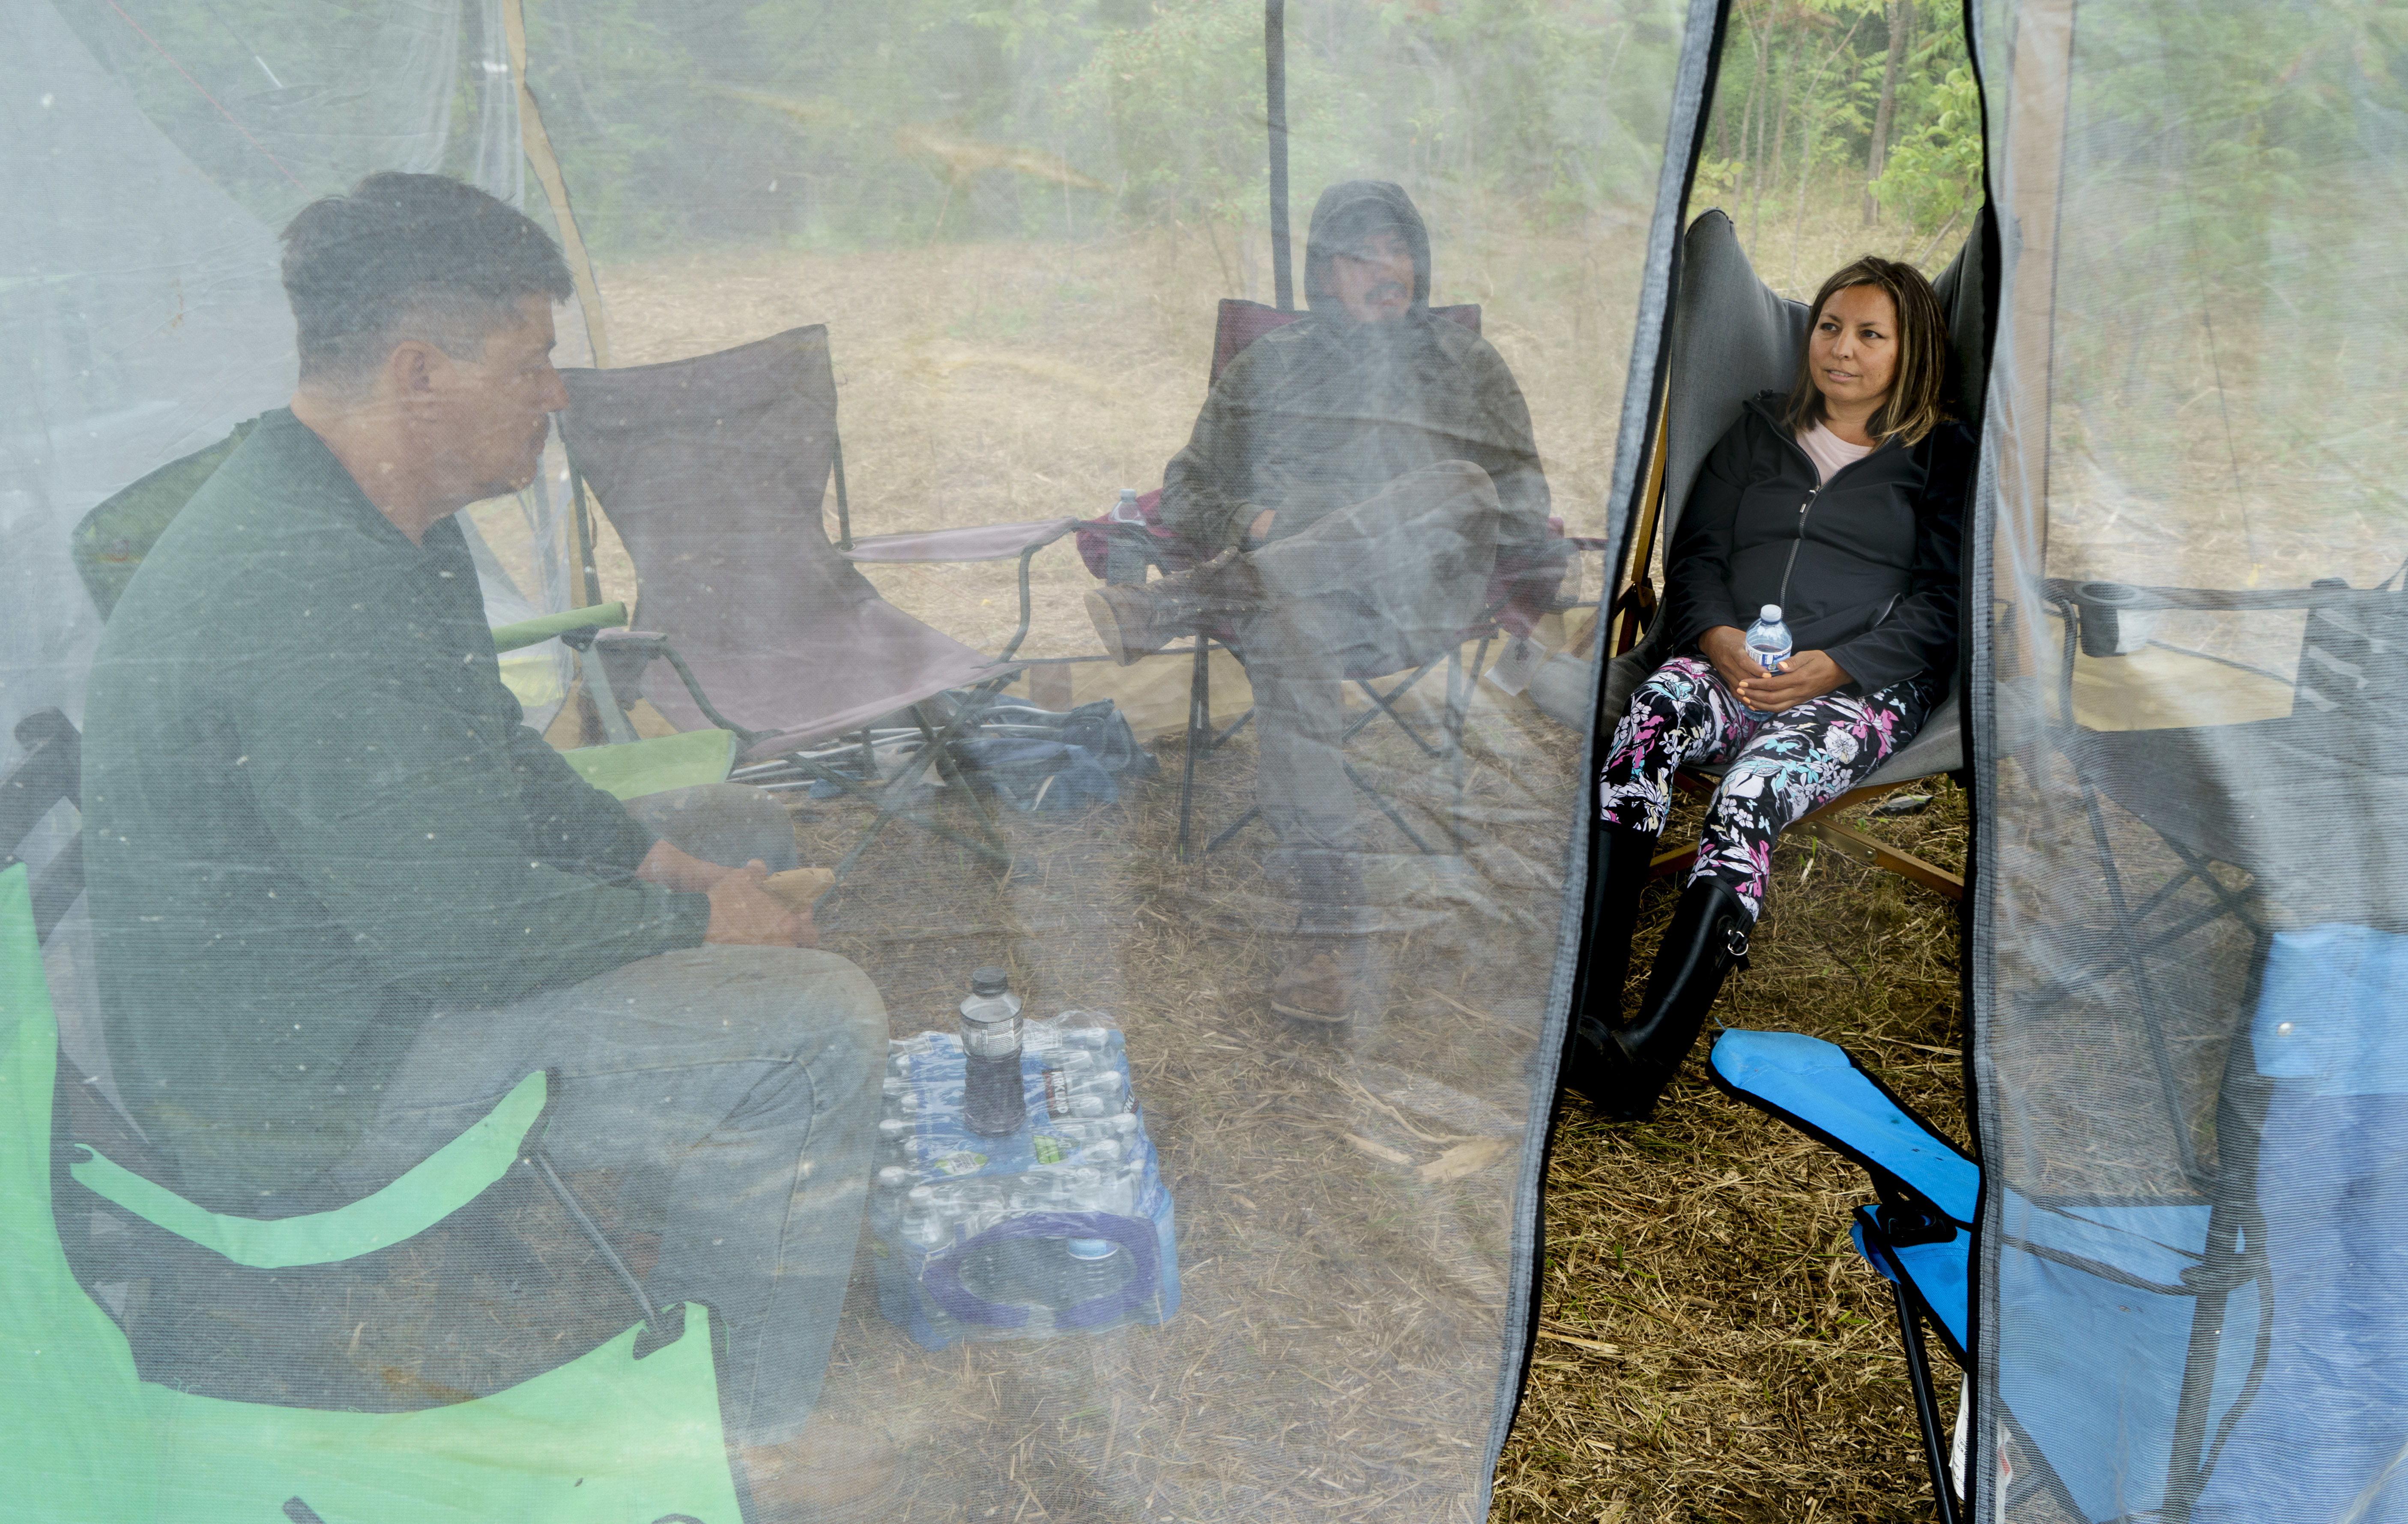 Karihwakatste Deer sits in a tent with fellow community members in a camp in Kahnawake on July 8. (Paul Chiasson/Canadian Press)